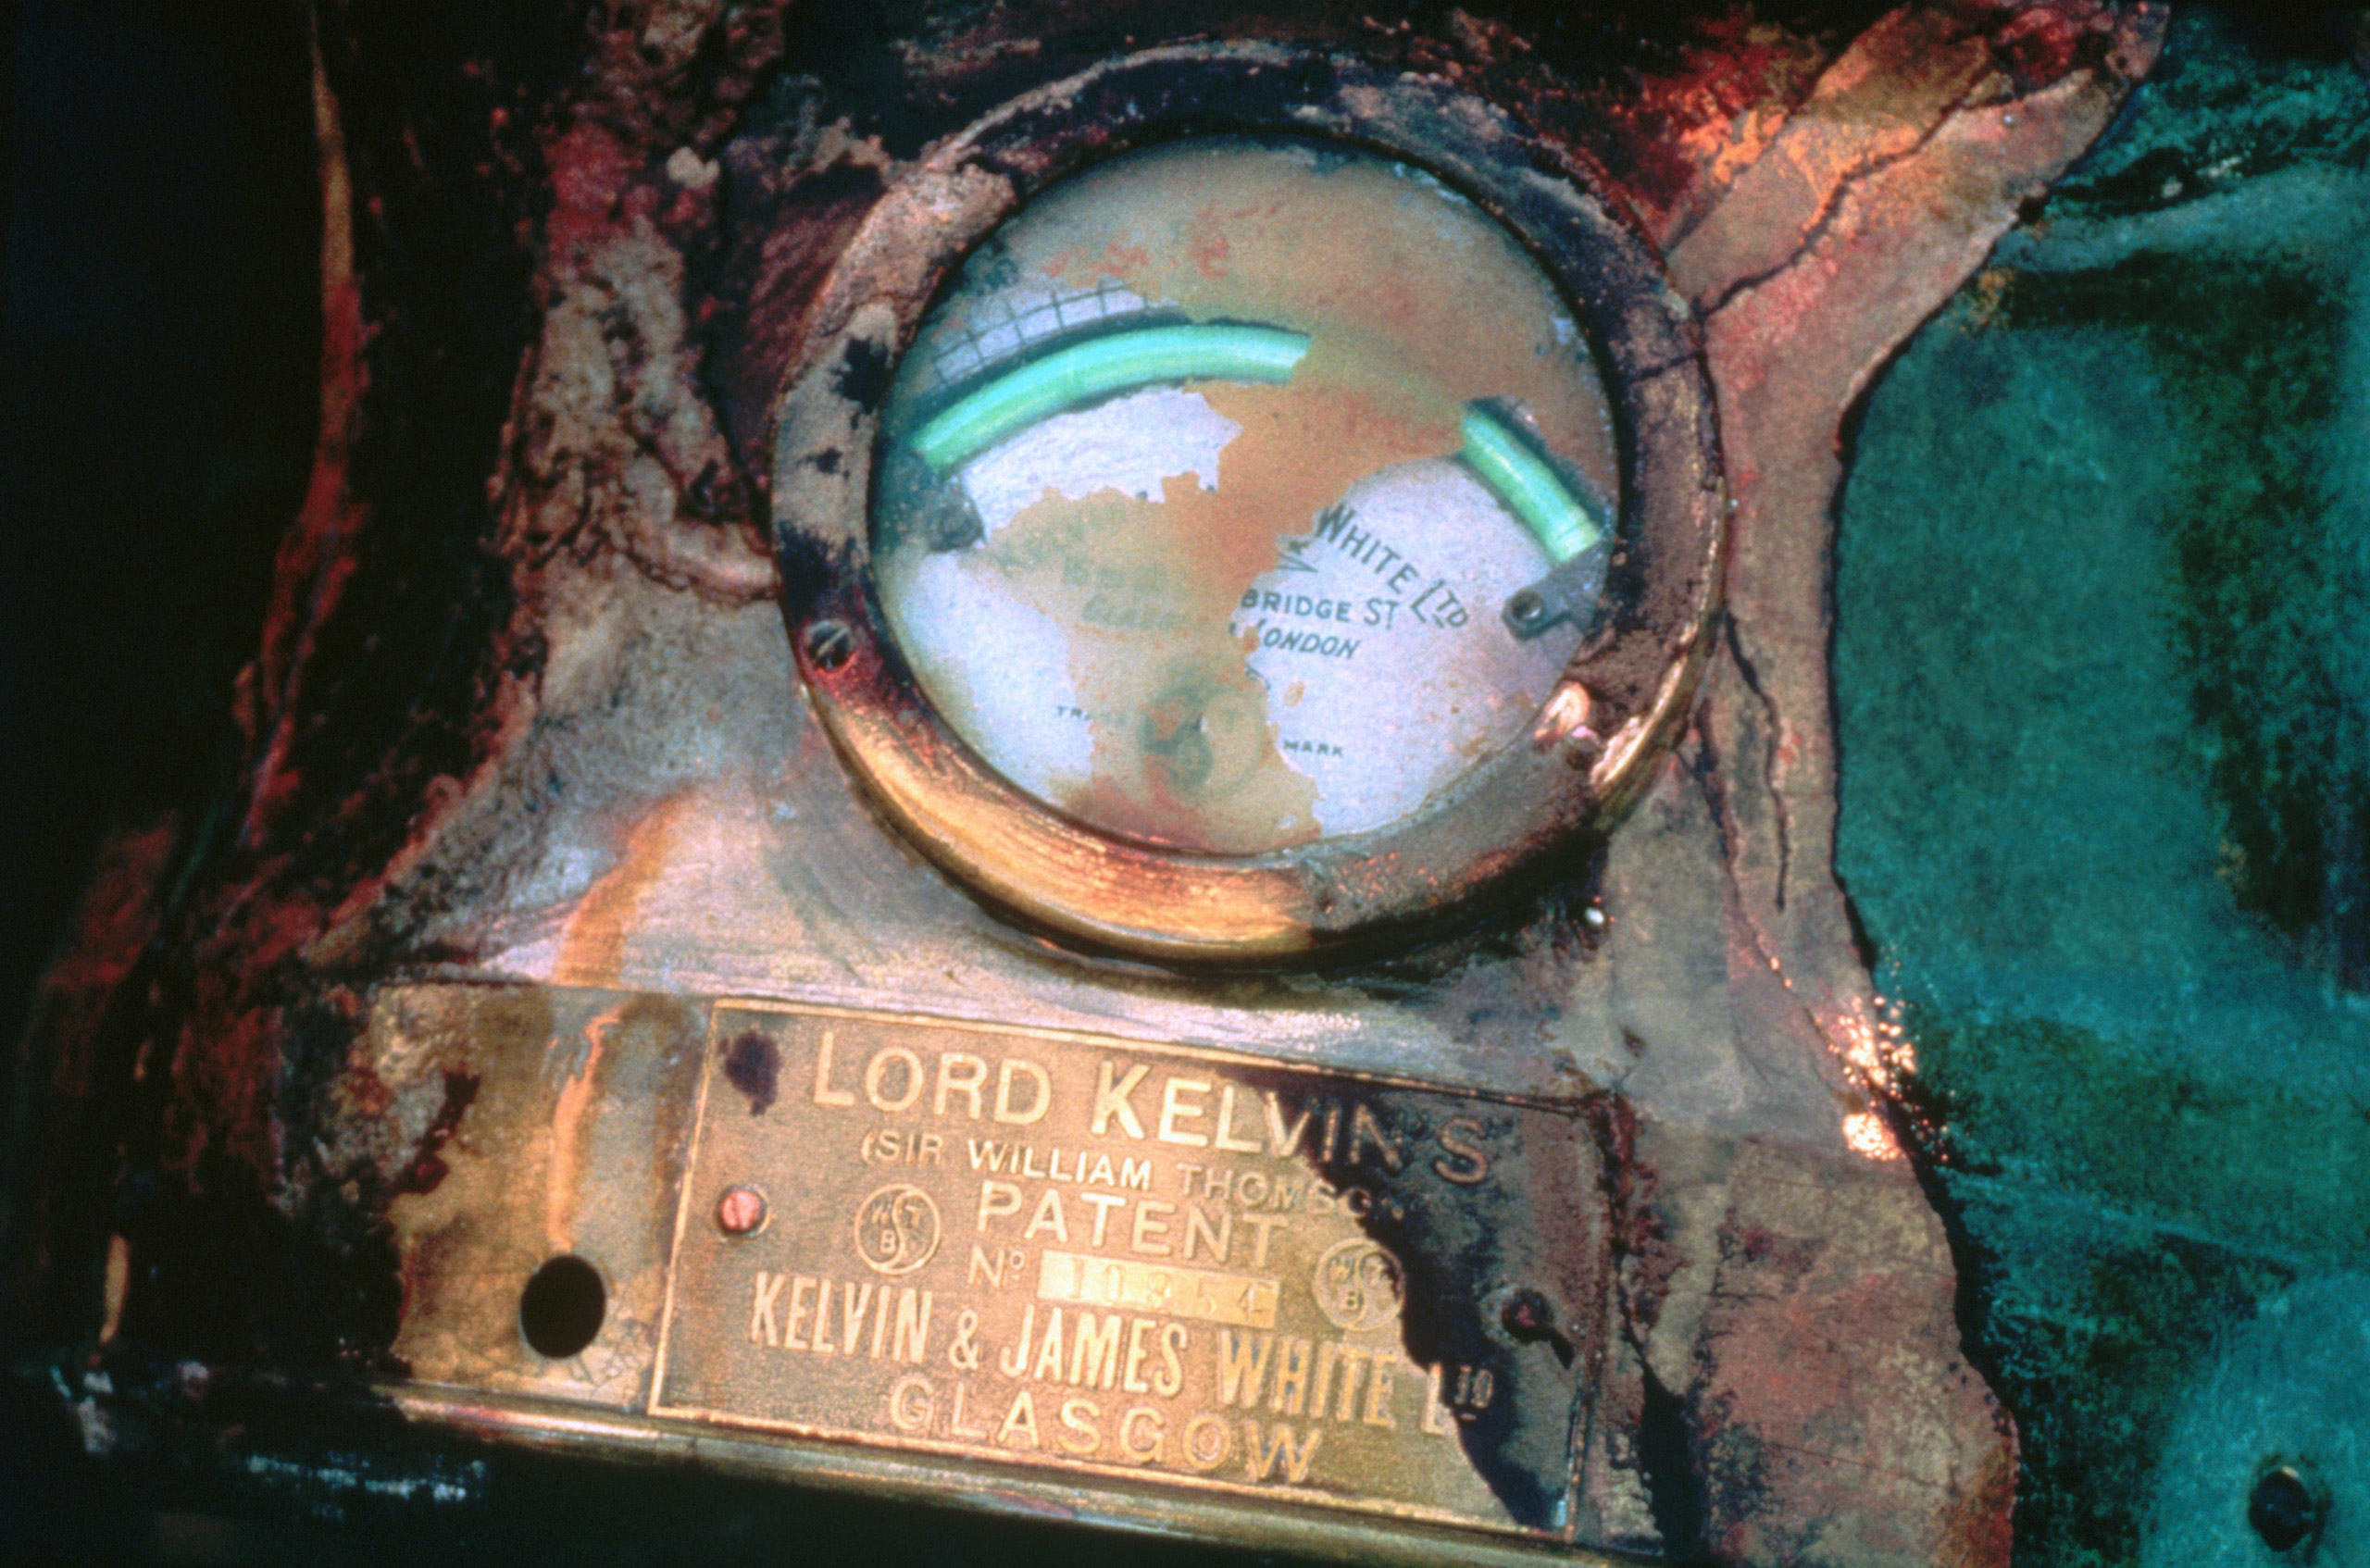 ca.1987-1991 --- An electric meter for the electric light from the compass of the Titanic was recovered from the shipwreck.